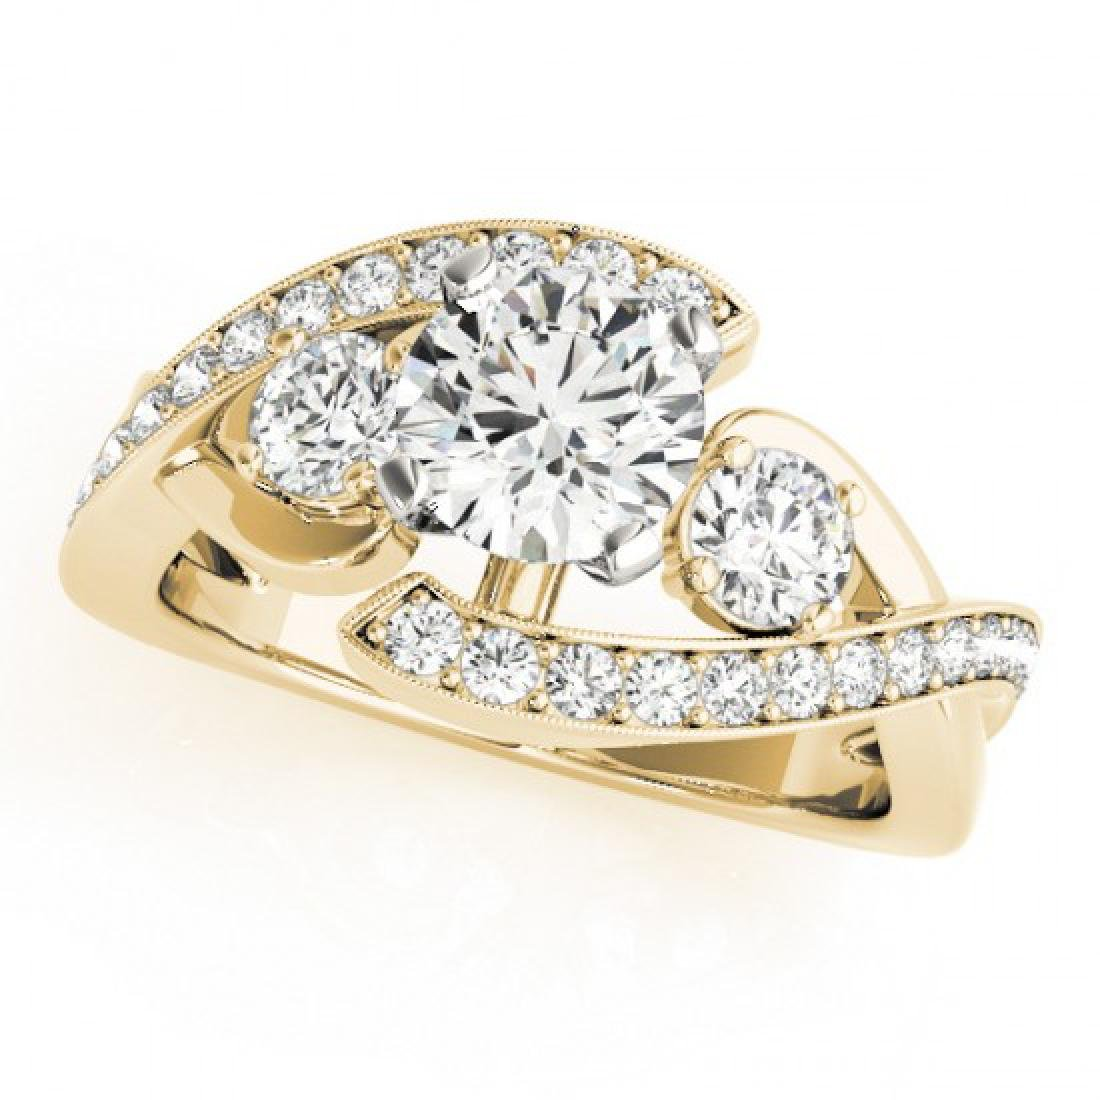 2.26 CTW Certified VS/SI Diamond Bypass Solitaire Ring